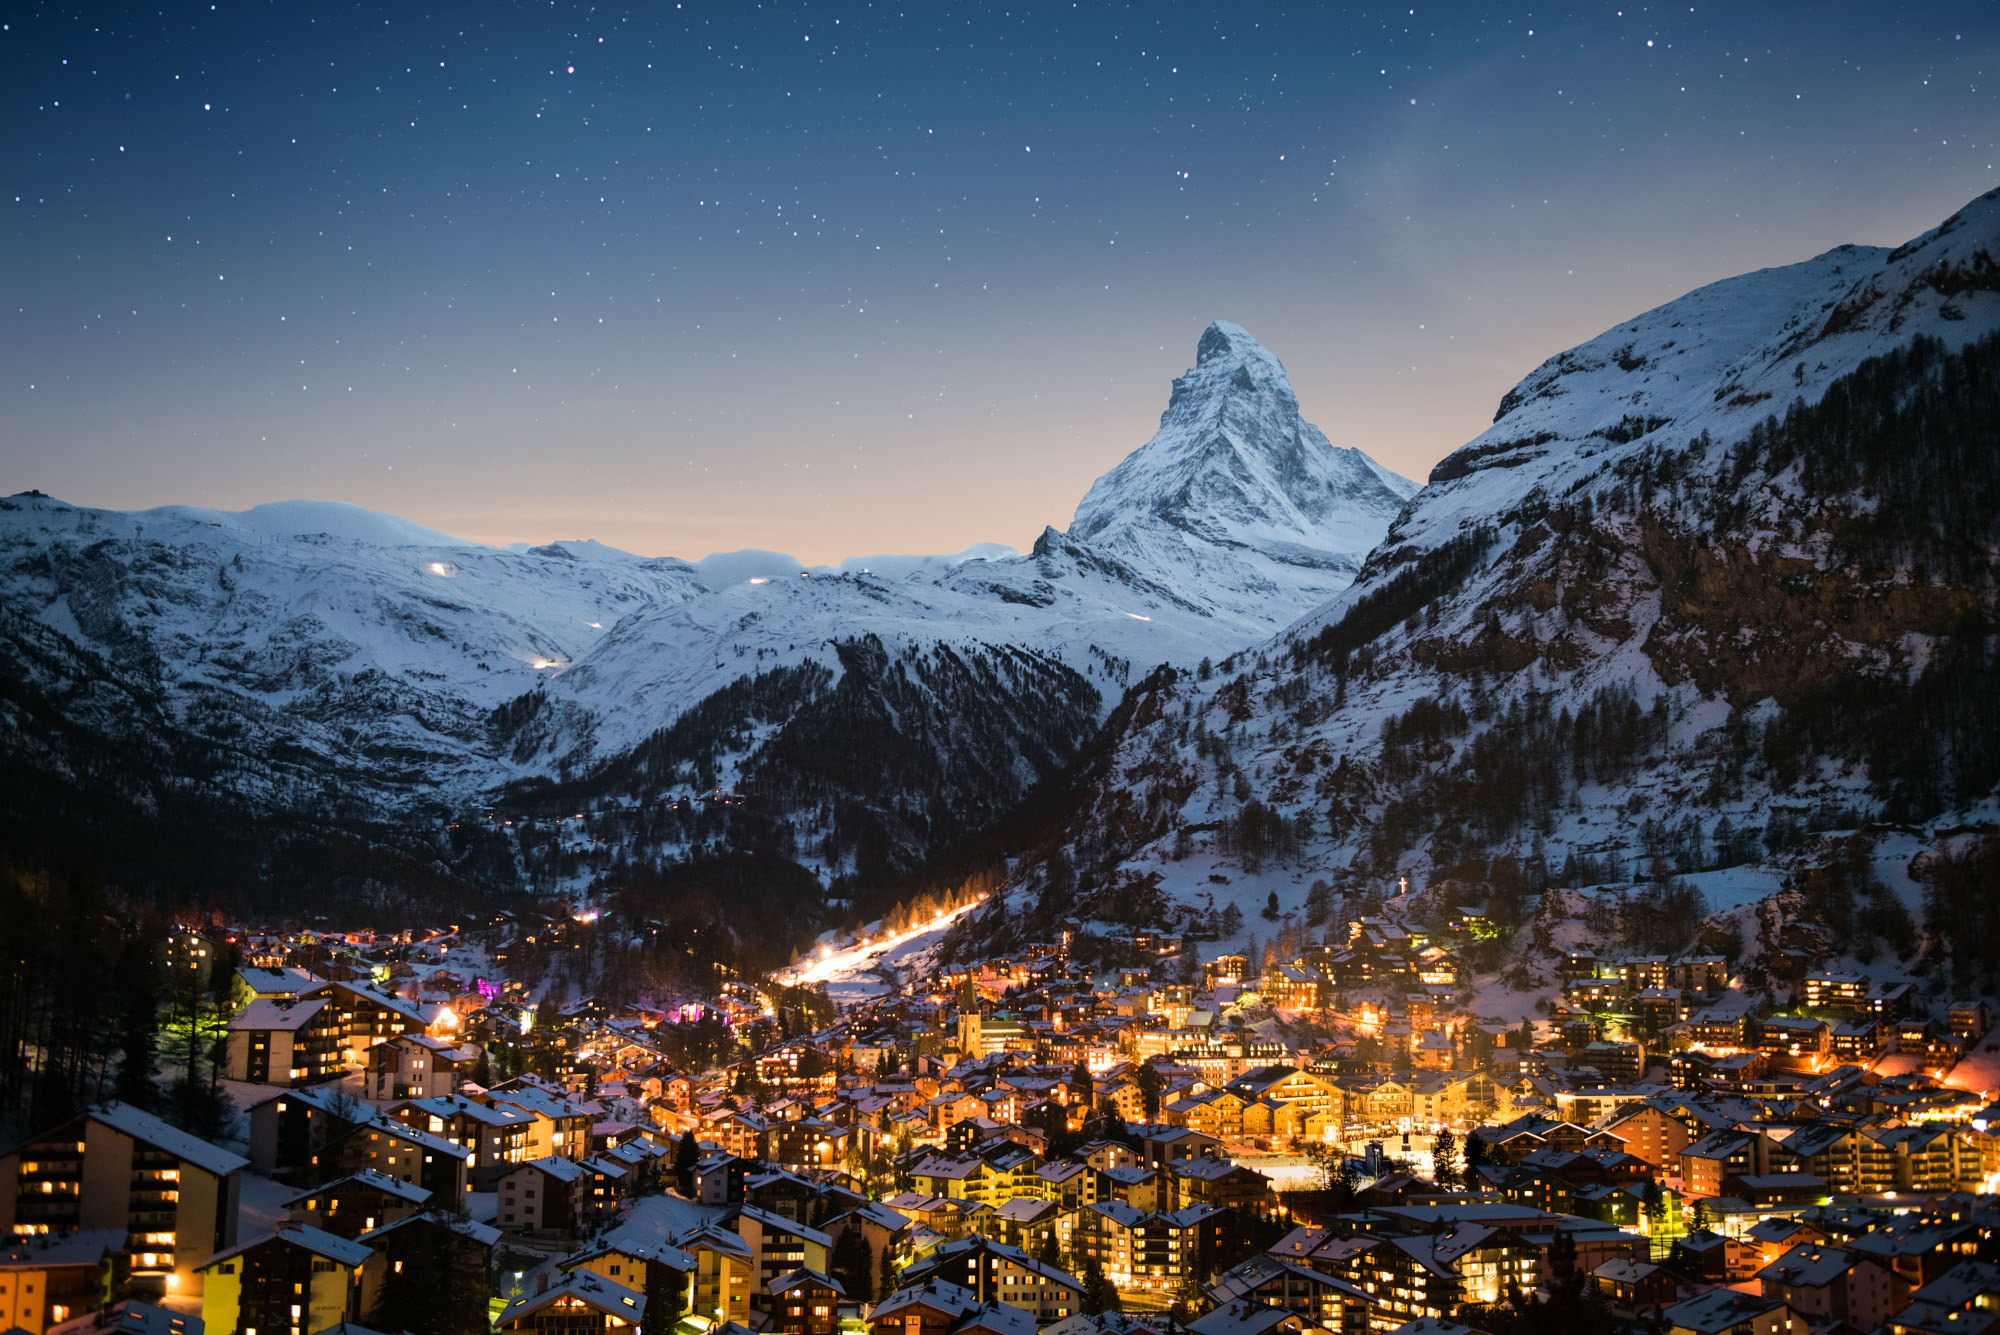 A magical winter wonderland snowy town in the mountains with the Matterhorn behind at night.